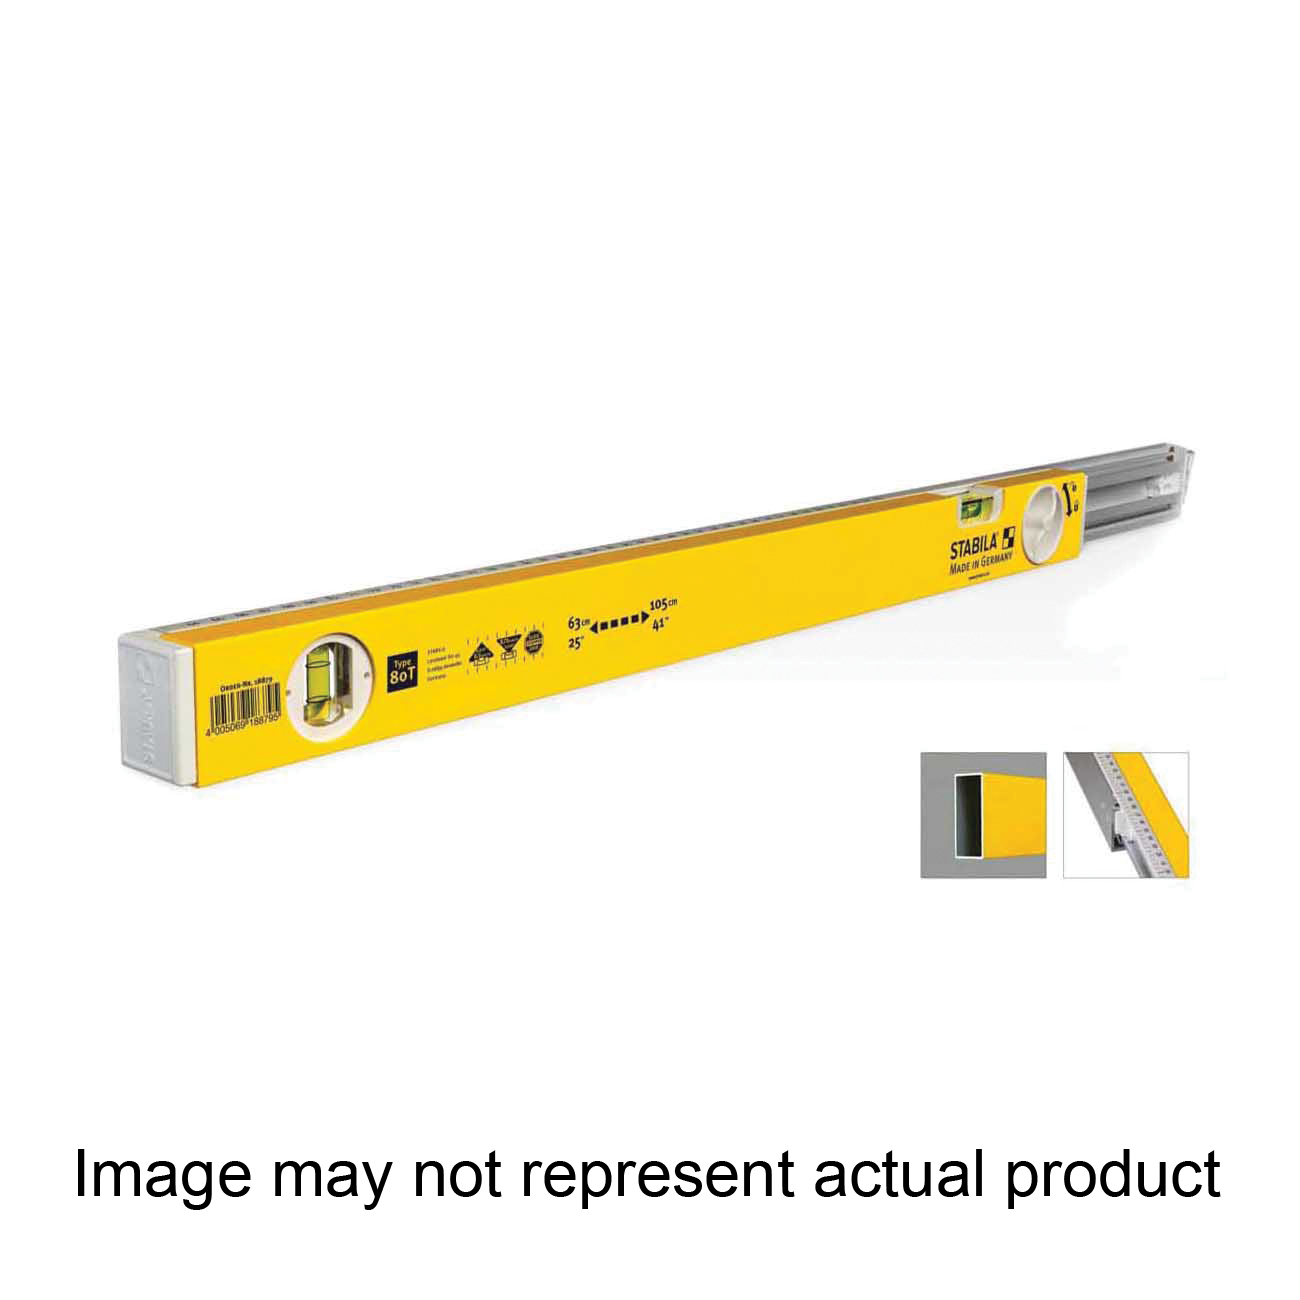 Picture of Stabila 29459 Extendable Level, 36 in L, 2 -Vial, Aluminum, Yellow/White